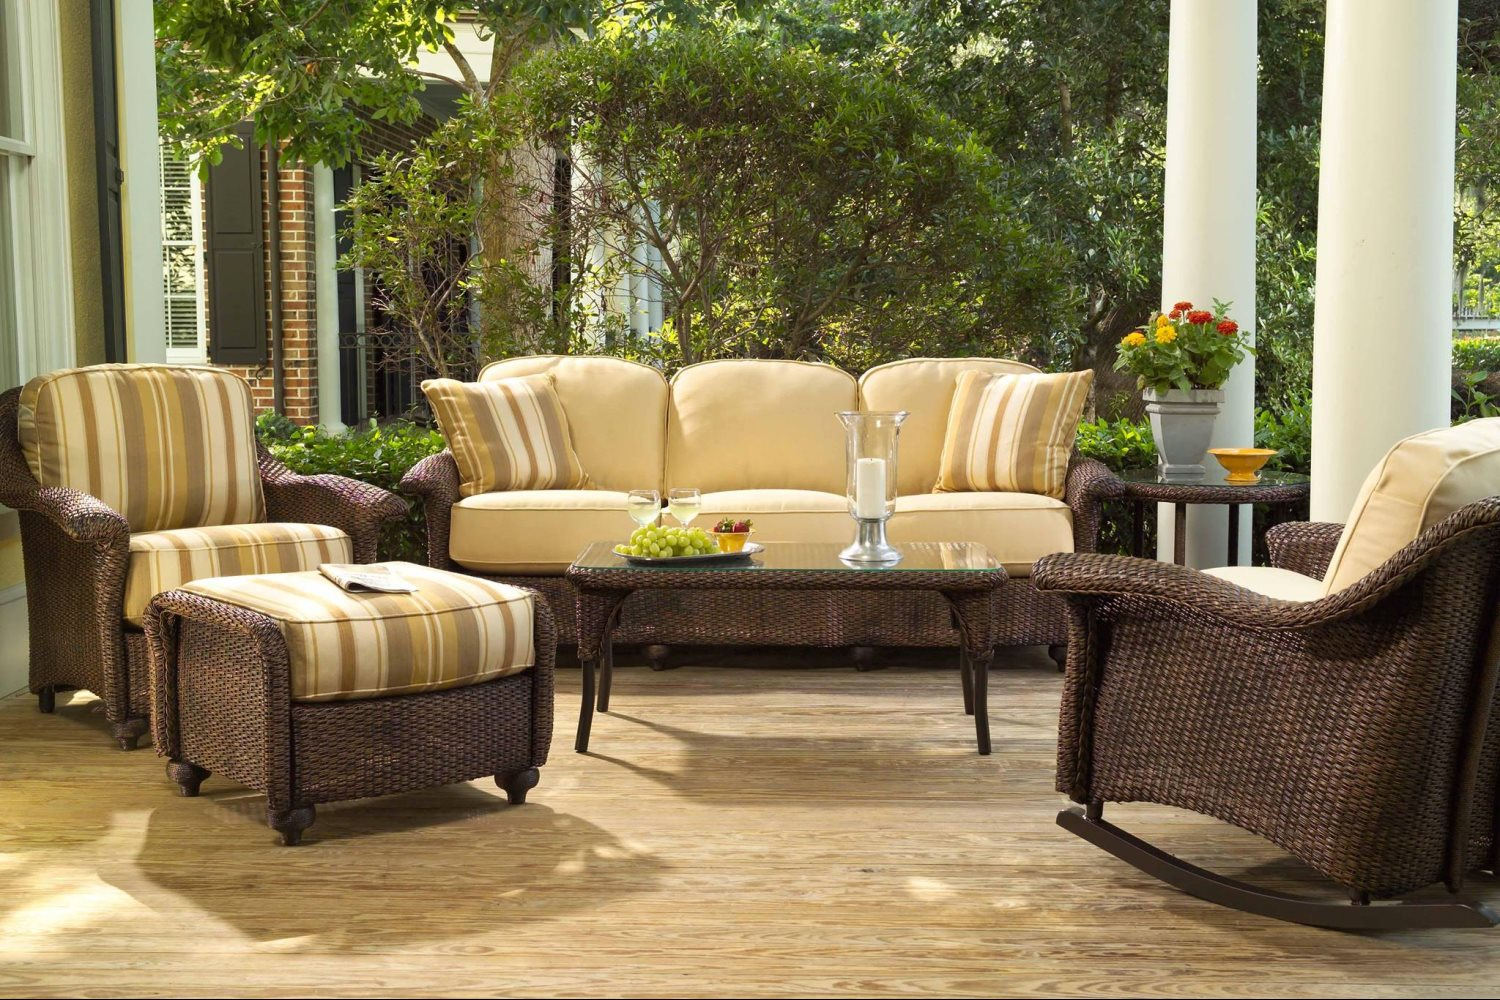 Patio Furniture Outdoor Seating Amp Dining Patio